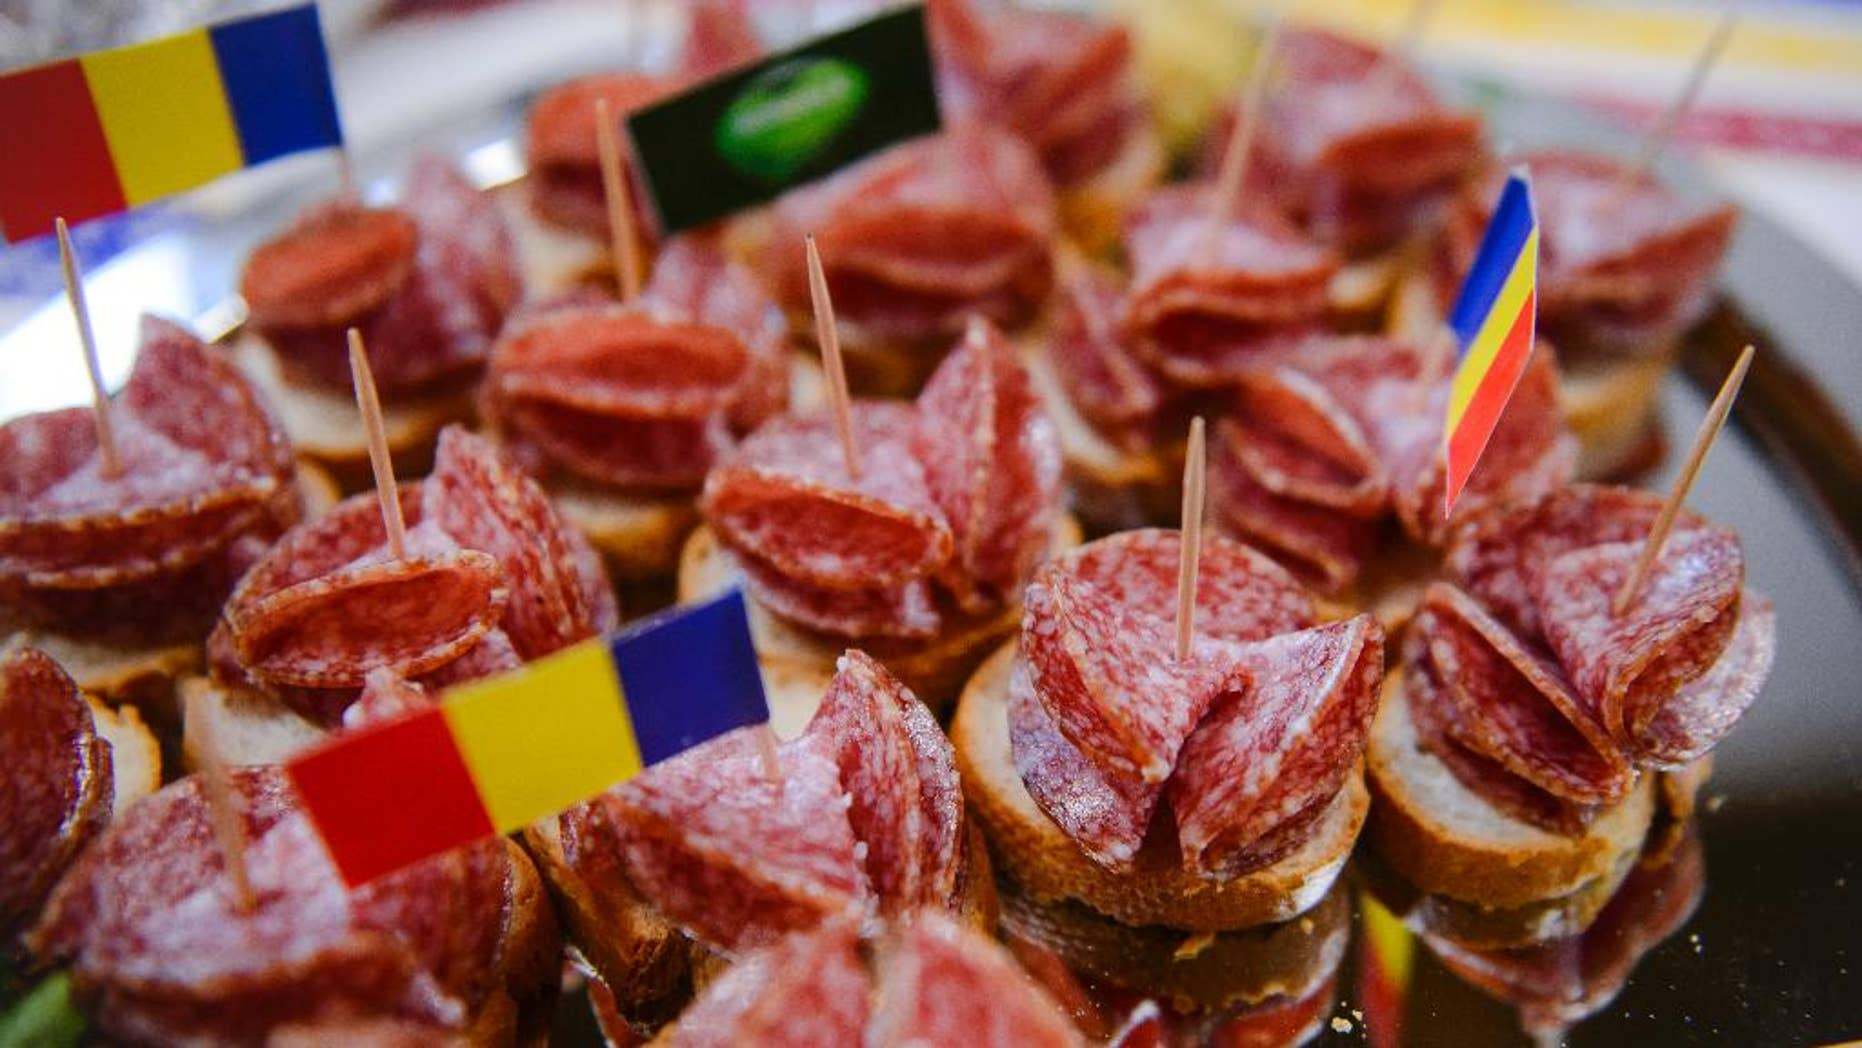 FILE- In this Friday, March. 18, 2016 file picture a platter of Sibiu salami, the local king of the smoked sausages, is presented to the media during a press conference, in Bucharest, Romania. Romanian lawmakers have adopted, Wednesday, June 8, 2016, legislation obliging supermarkets to sell at least 51 percent home-produced meat, fruit, eggs and vegetables in a move to support farmers.(AP Photo/Andreea Alexandru, File) ROMANIA OUT